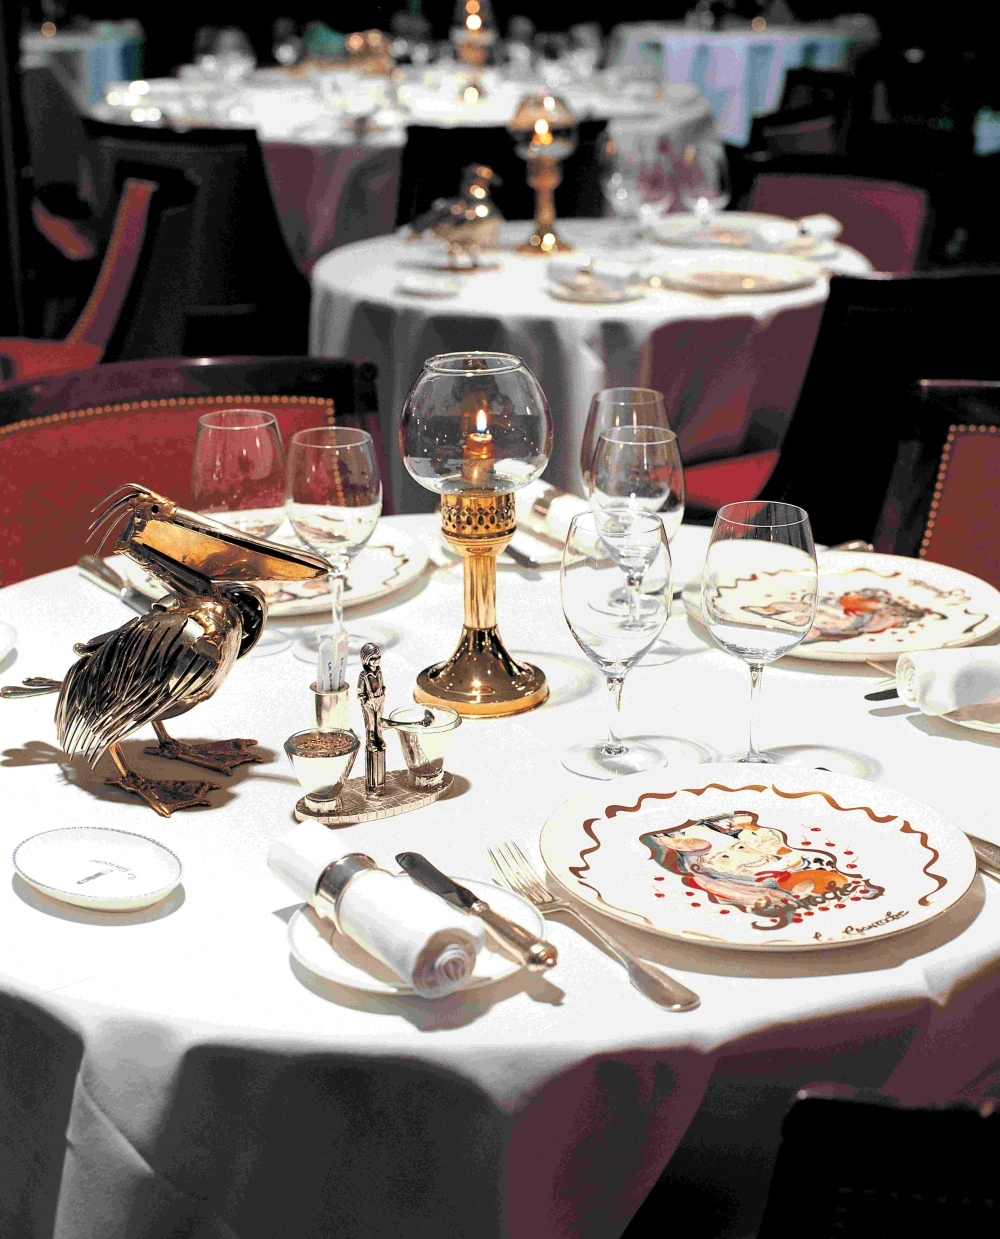 Food_legavroche_2010press (2).jpg